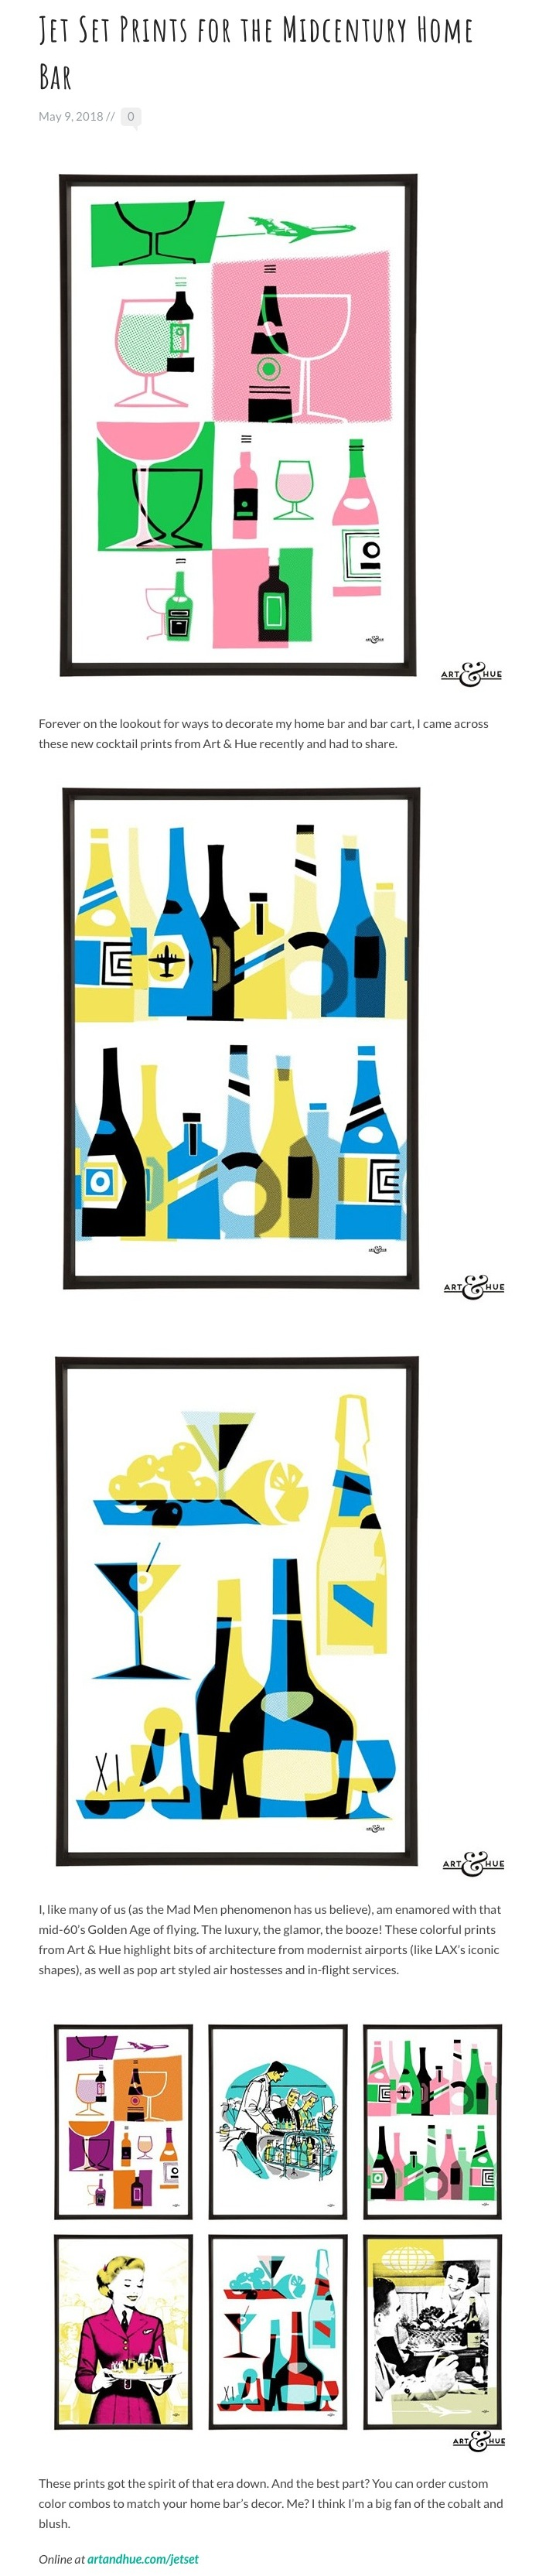 Jet Set Prints for the Midcentury Home Bar | Stir and Strain